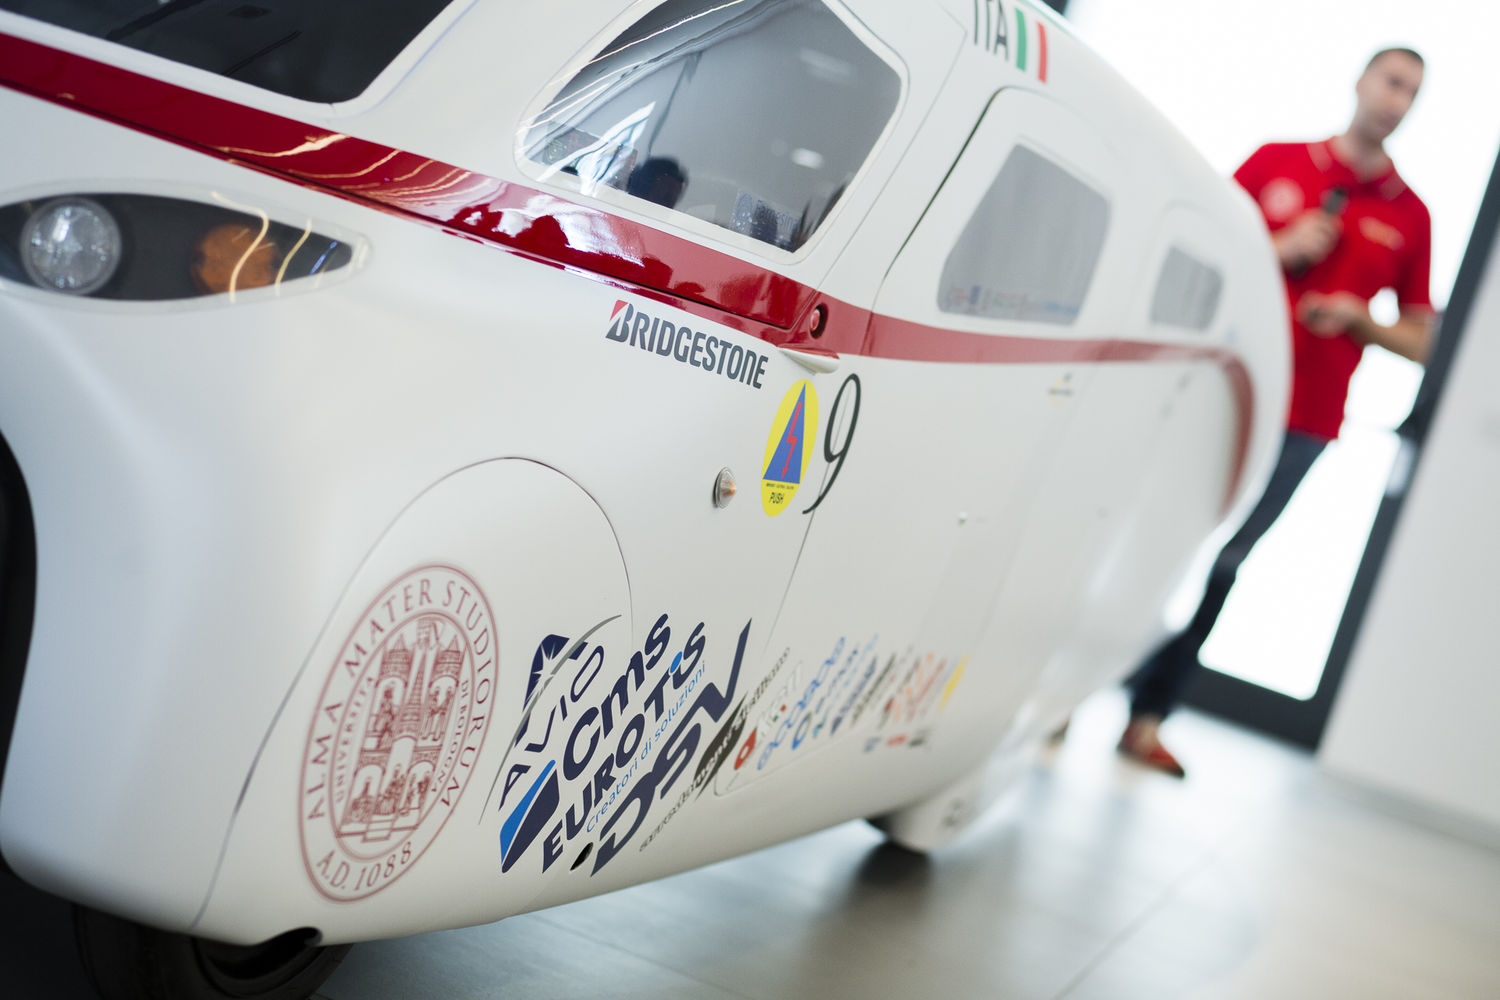 World Solar Challenge: the new Australian challenge for the Emilia 4 LT solar powered car is about to begin